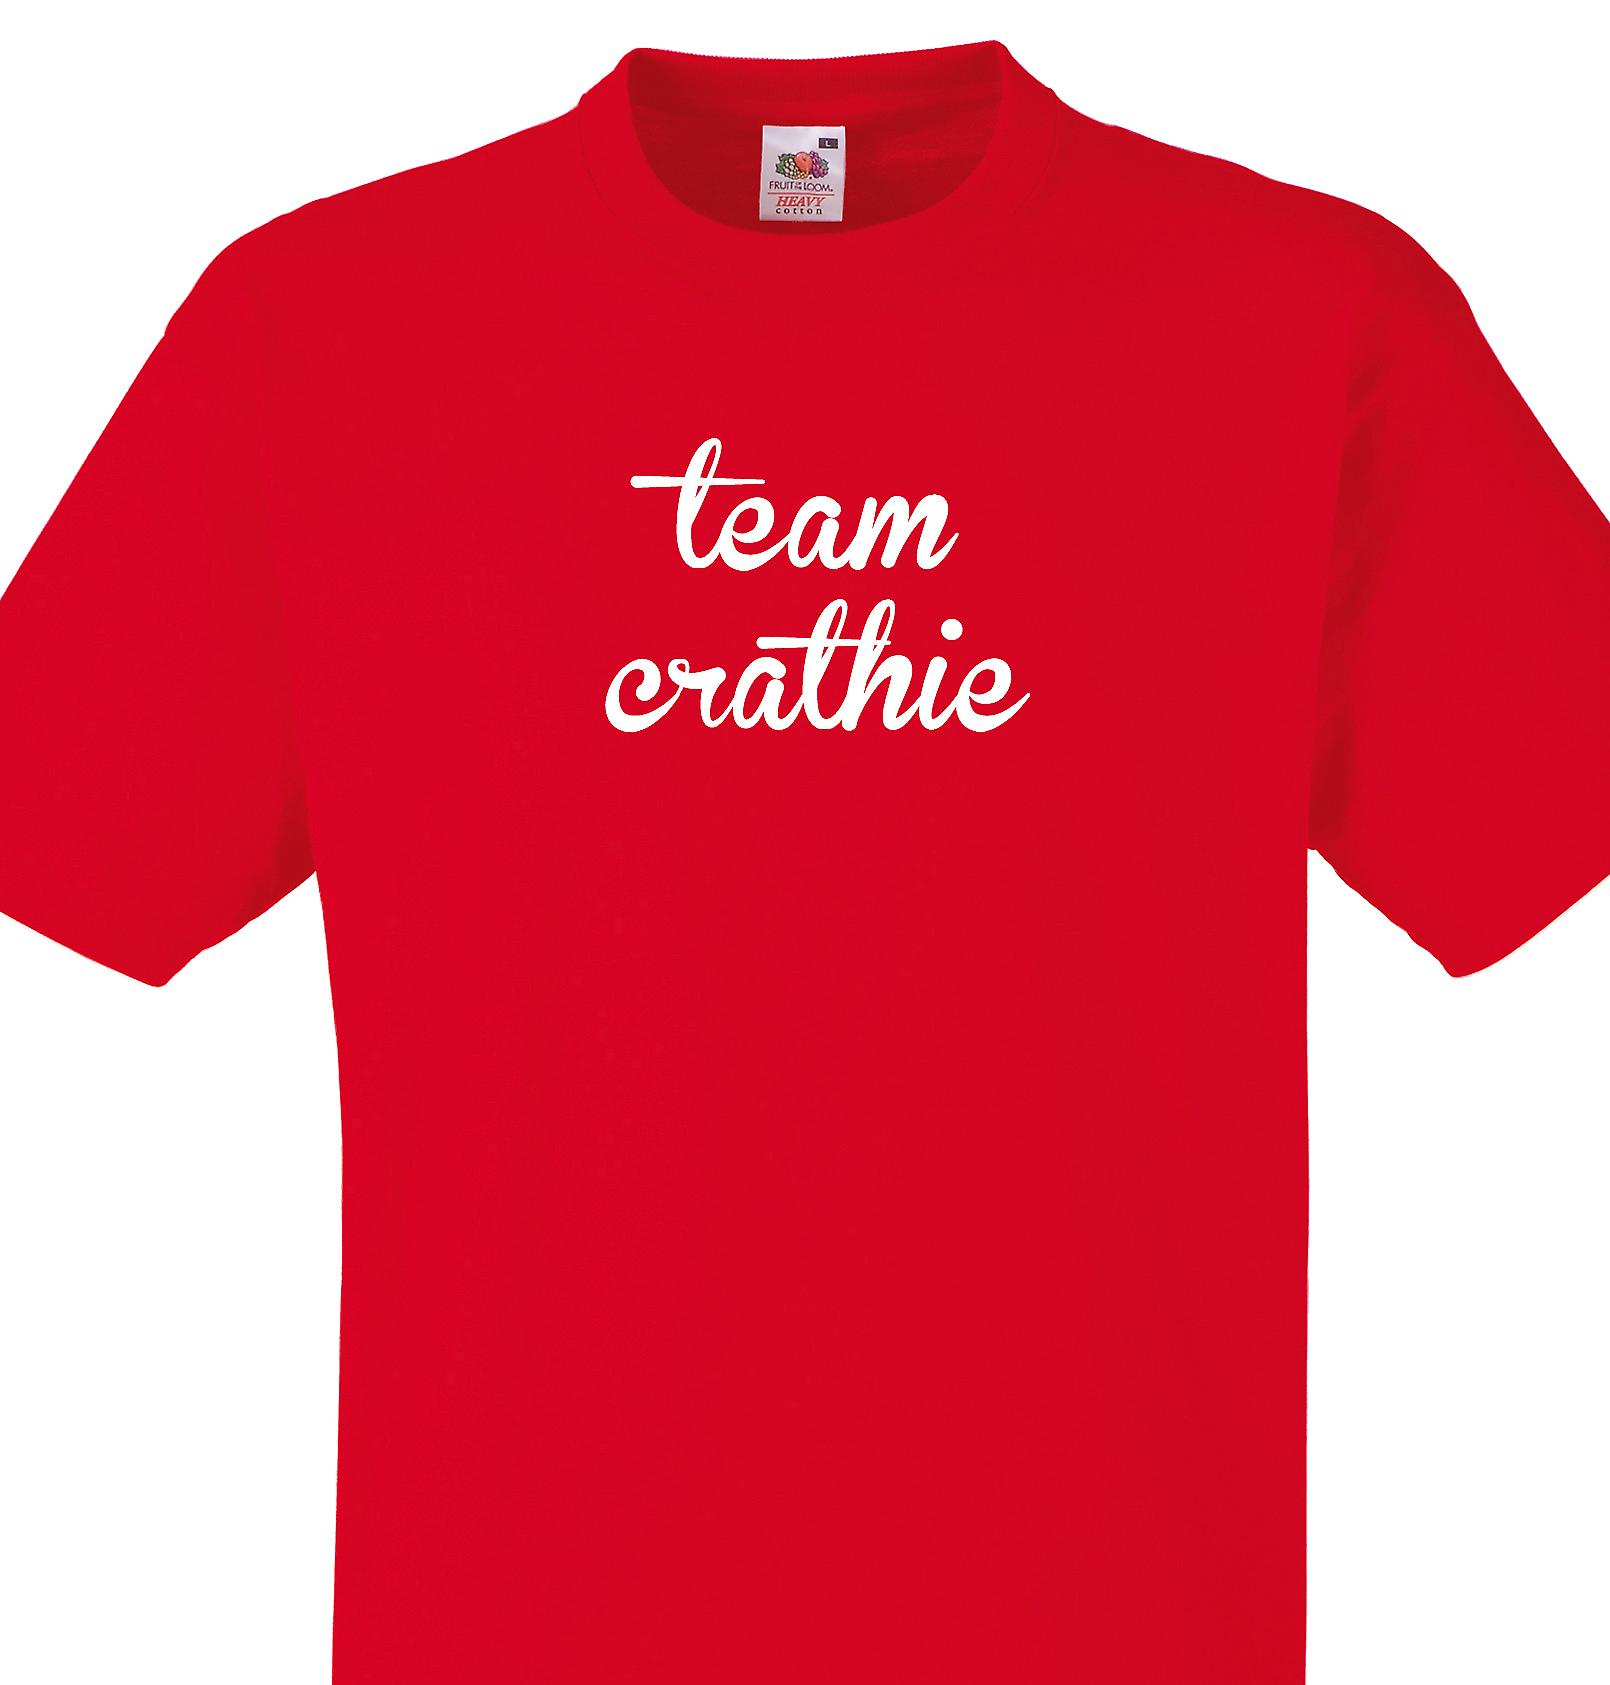 Team Crathie Red T shirt